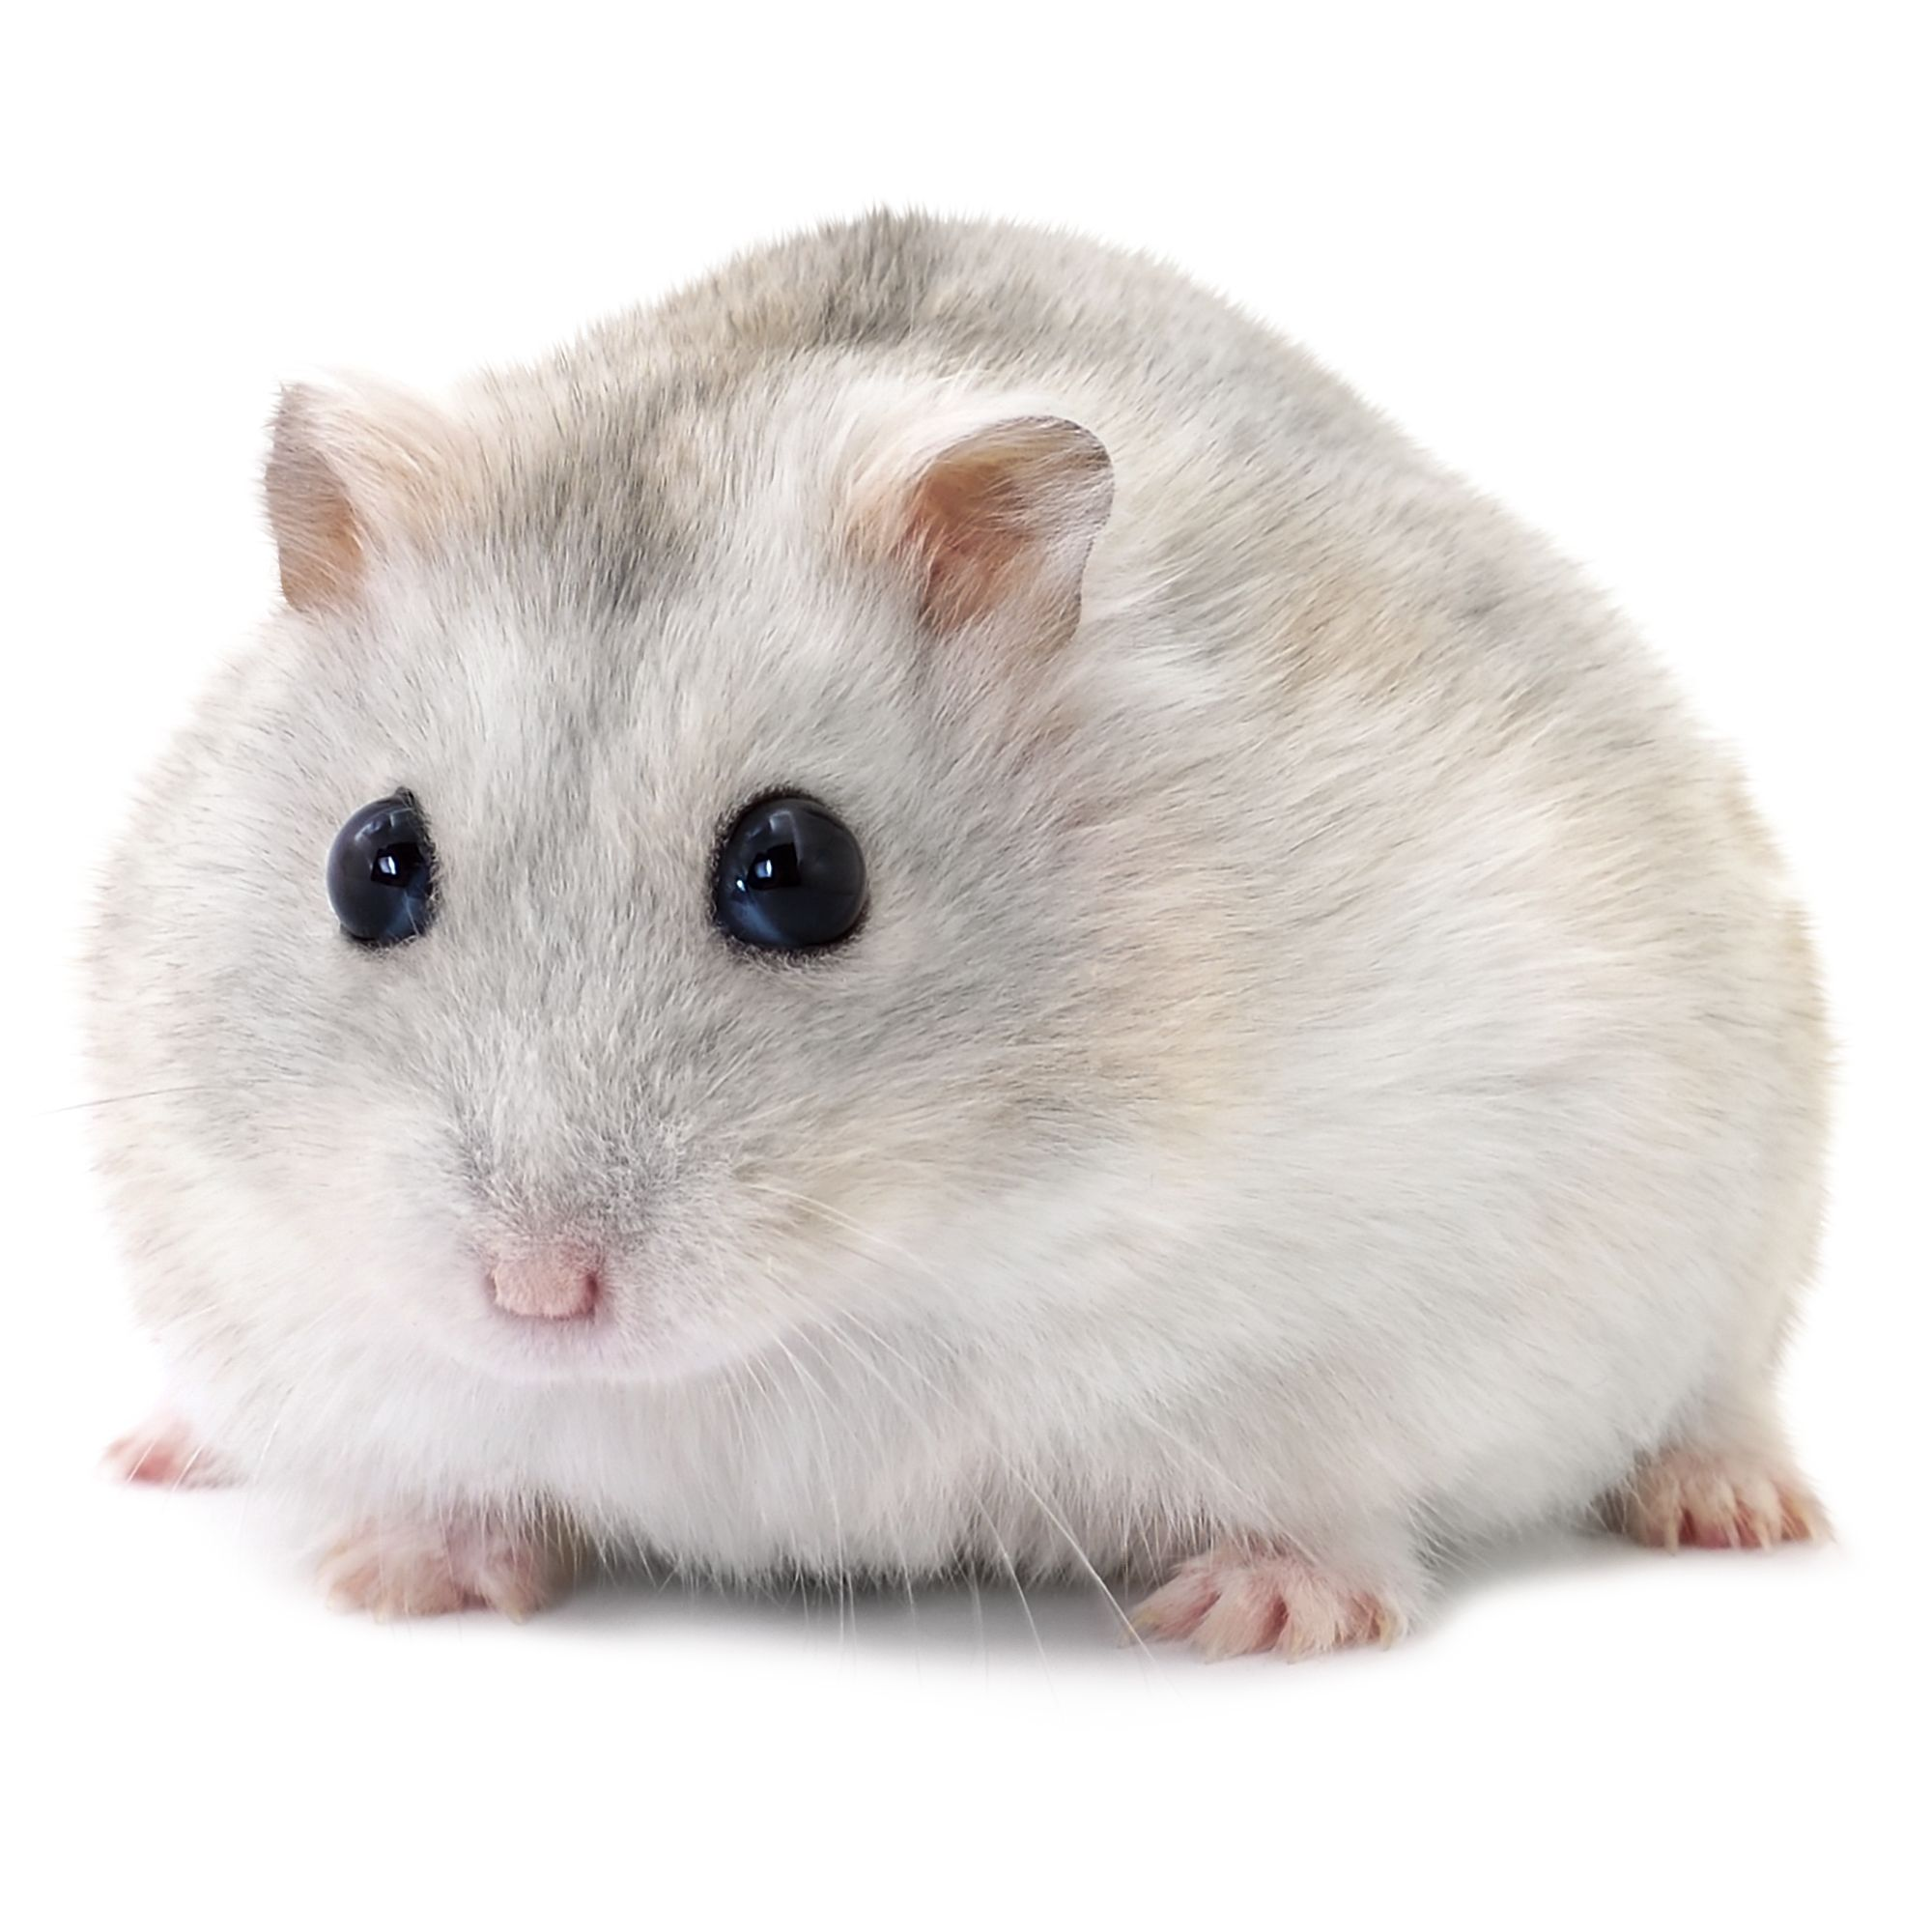 how much is a hamster at petco